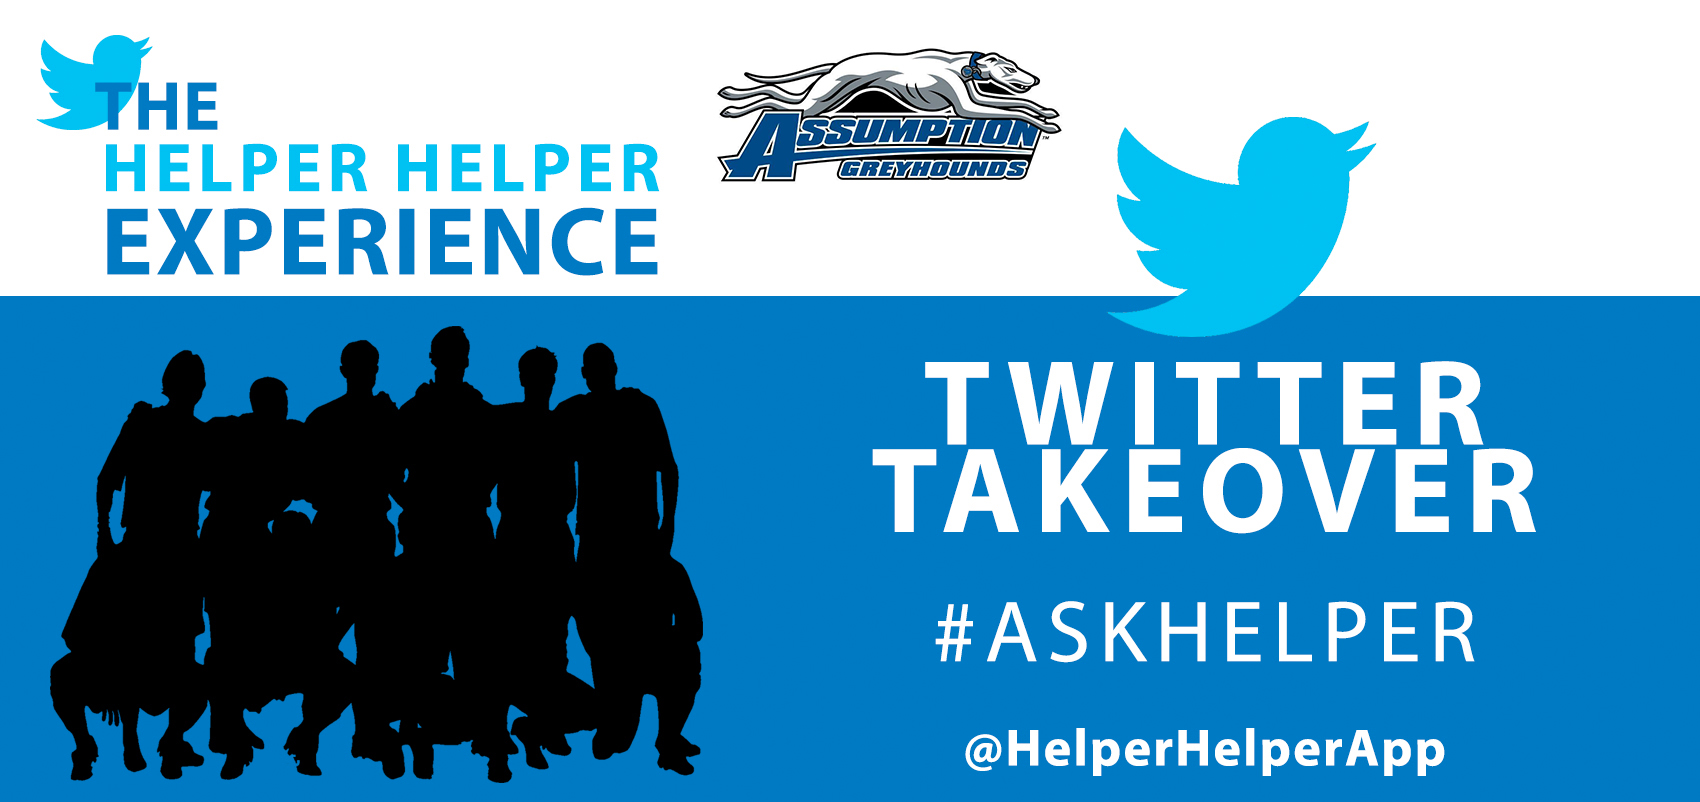 Assumption College Twitter Takeover